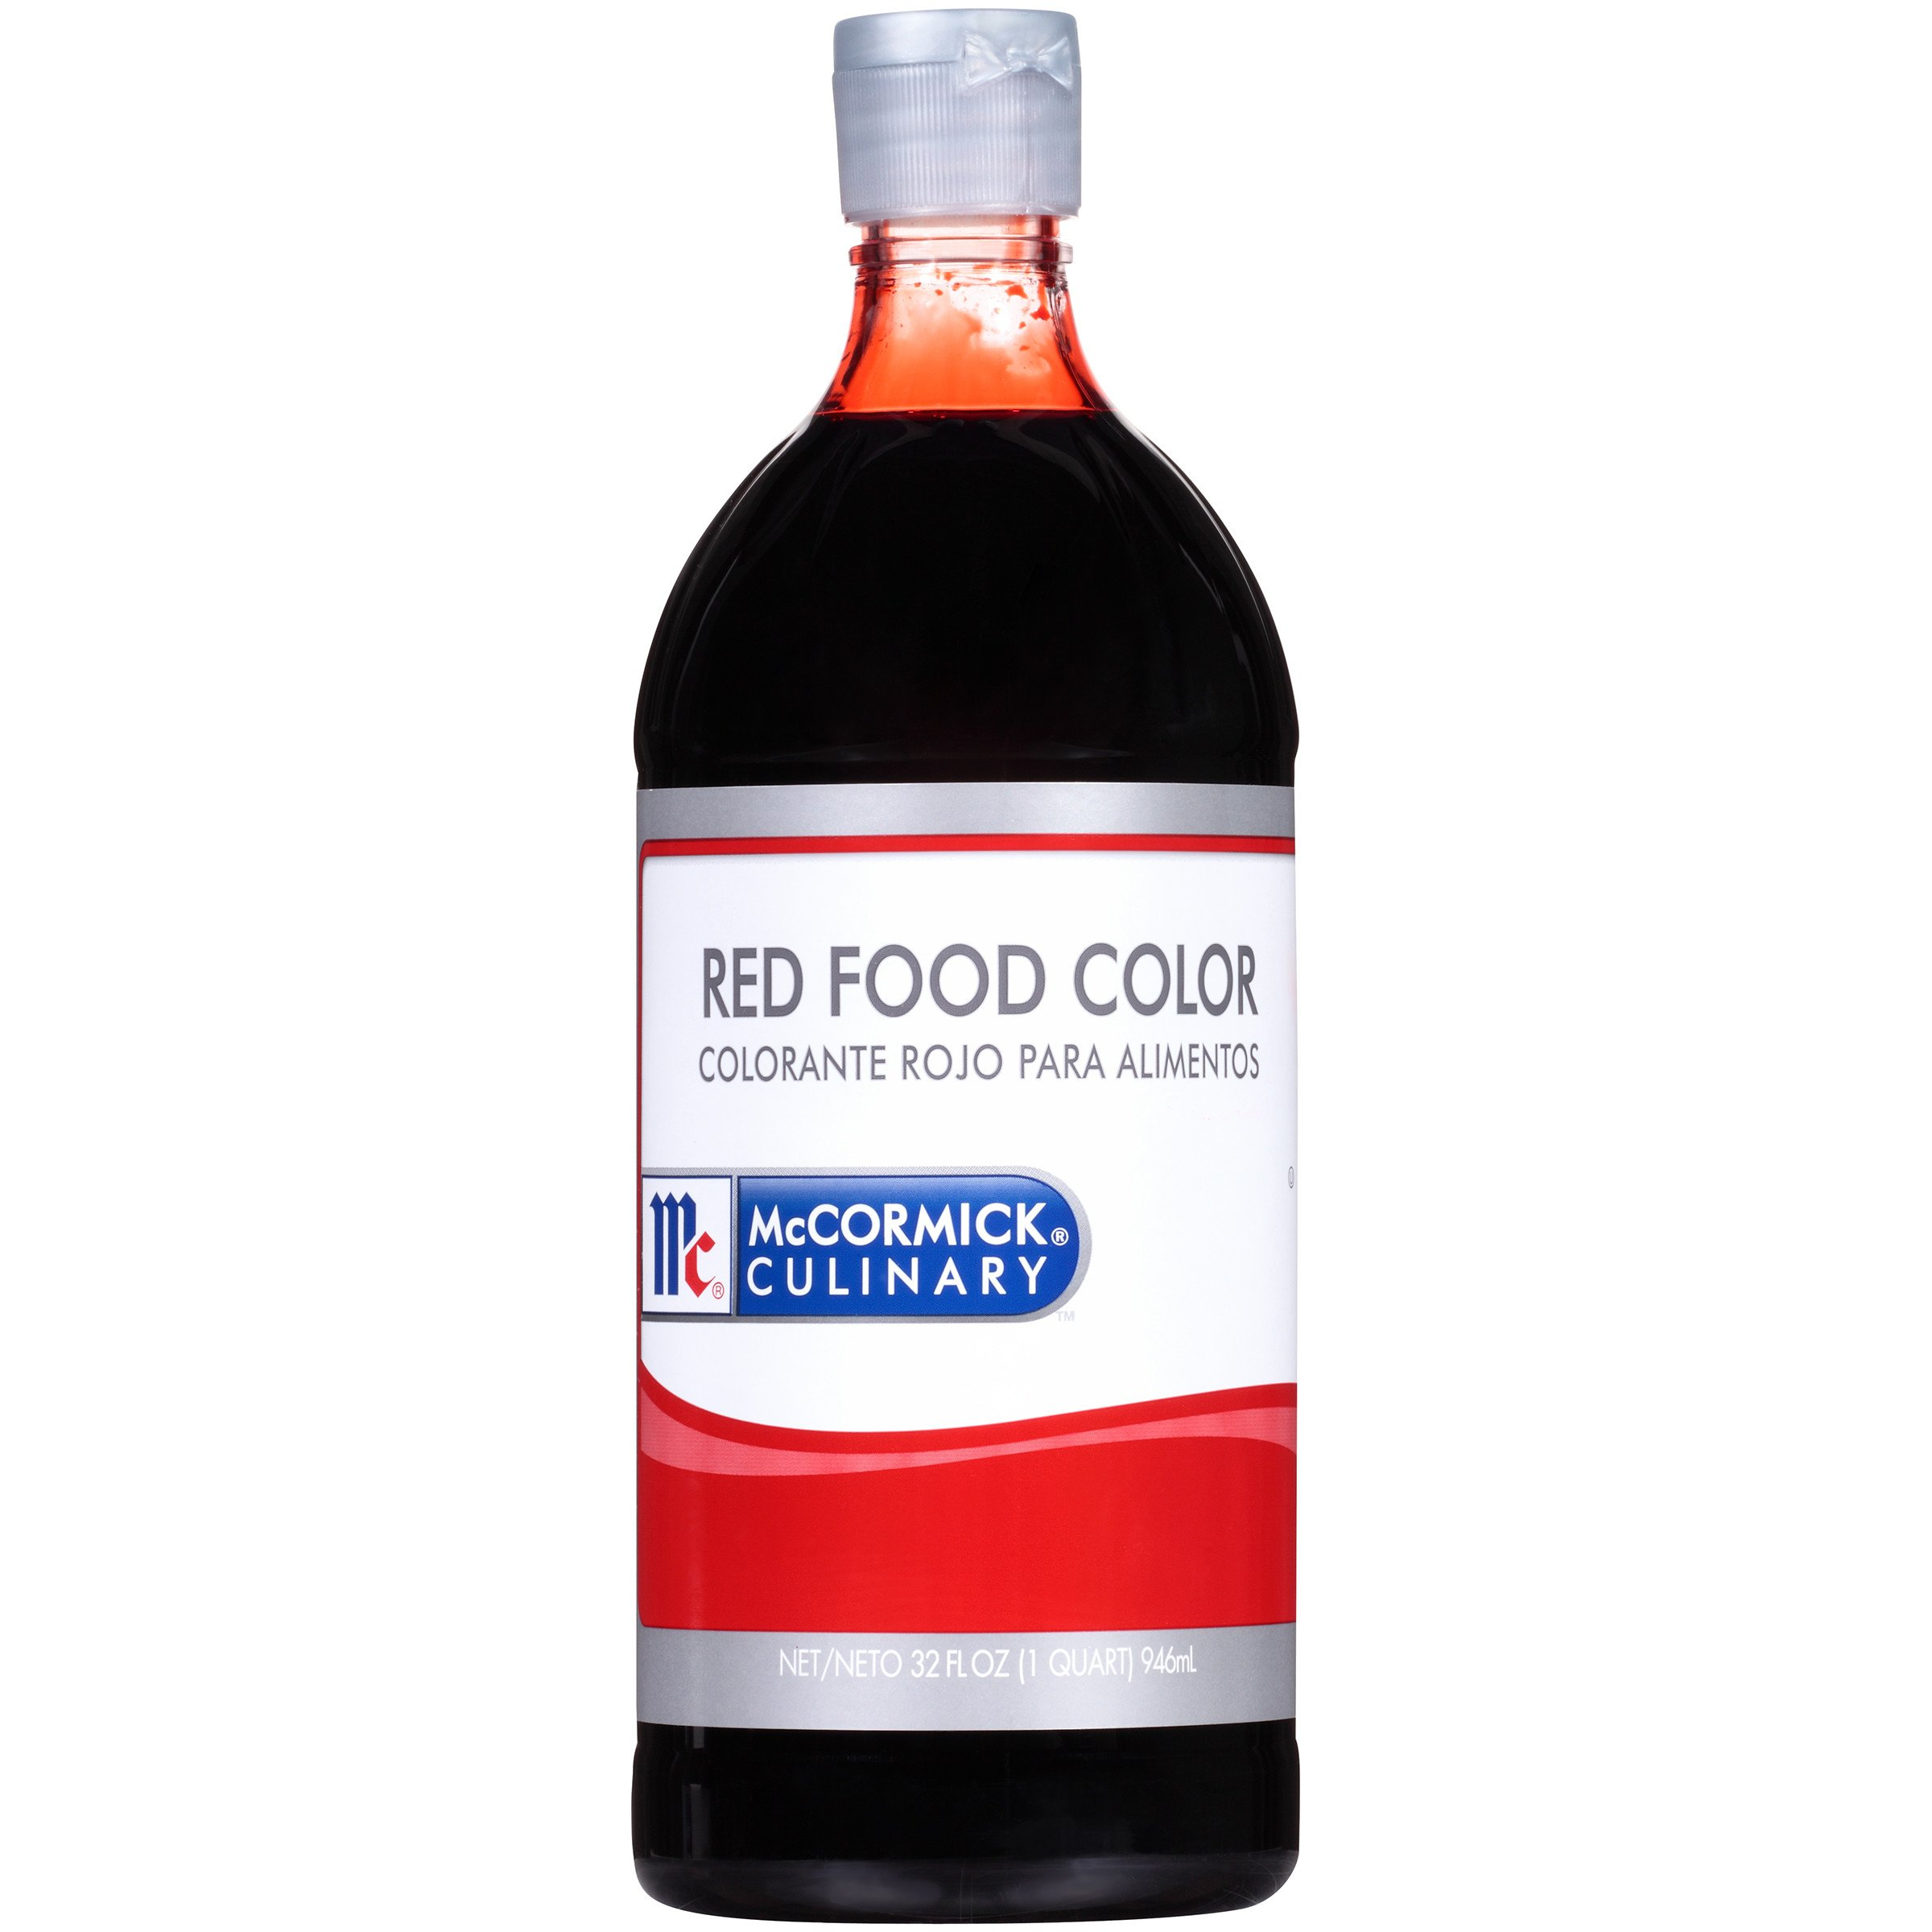 McCormick Culinary Red Food Color, 1 qt by McCormick Culinary